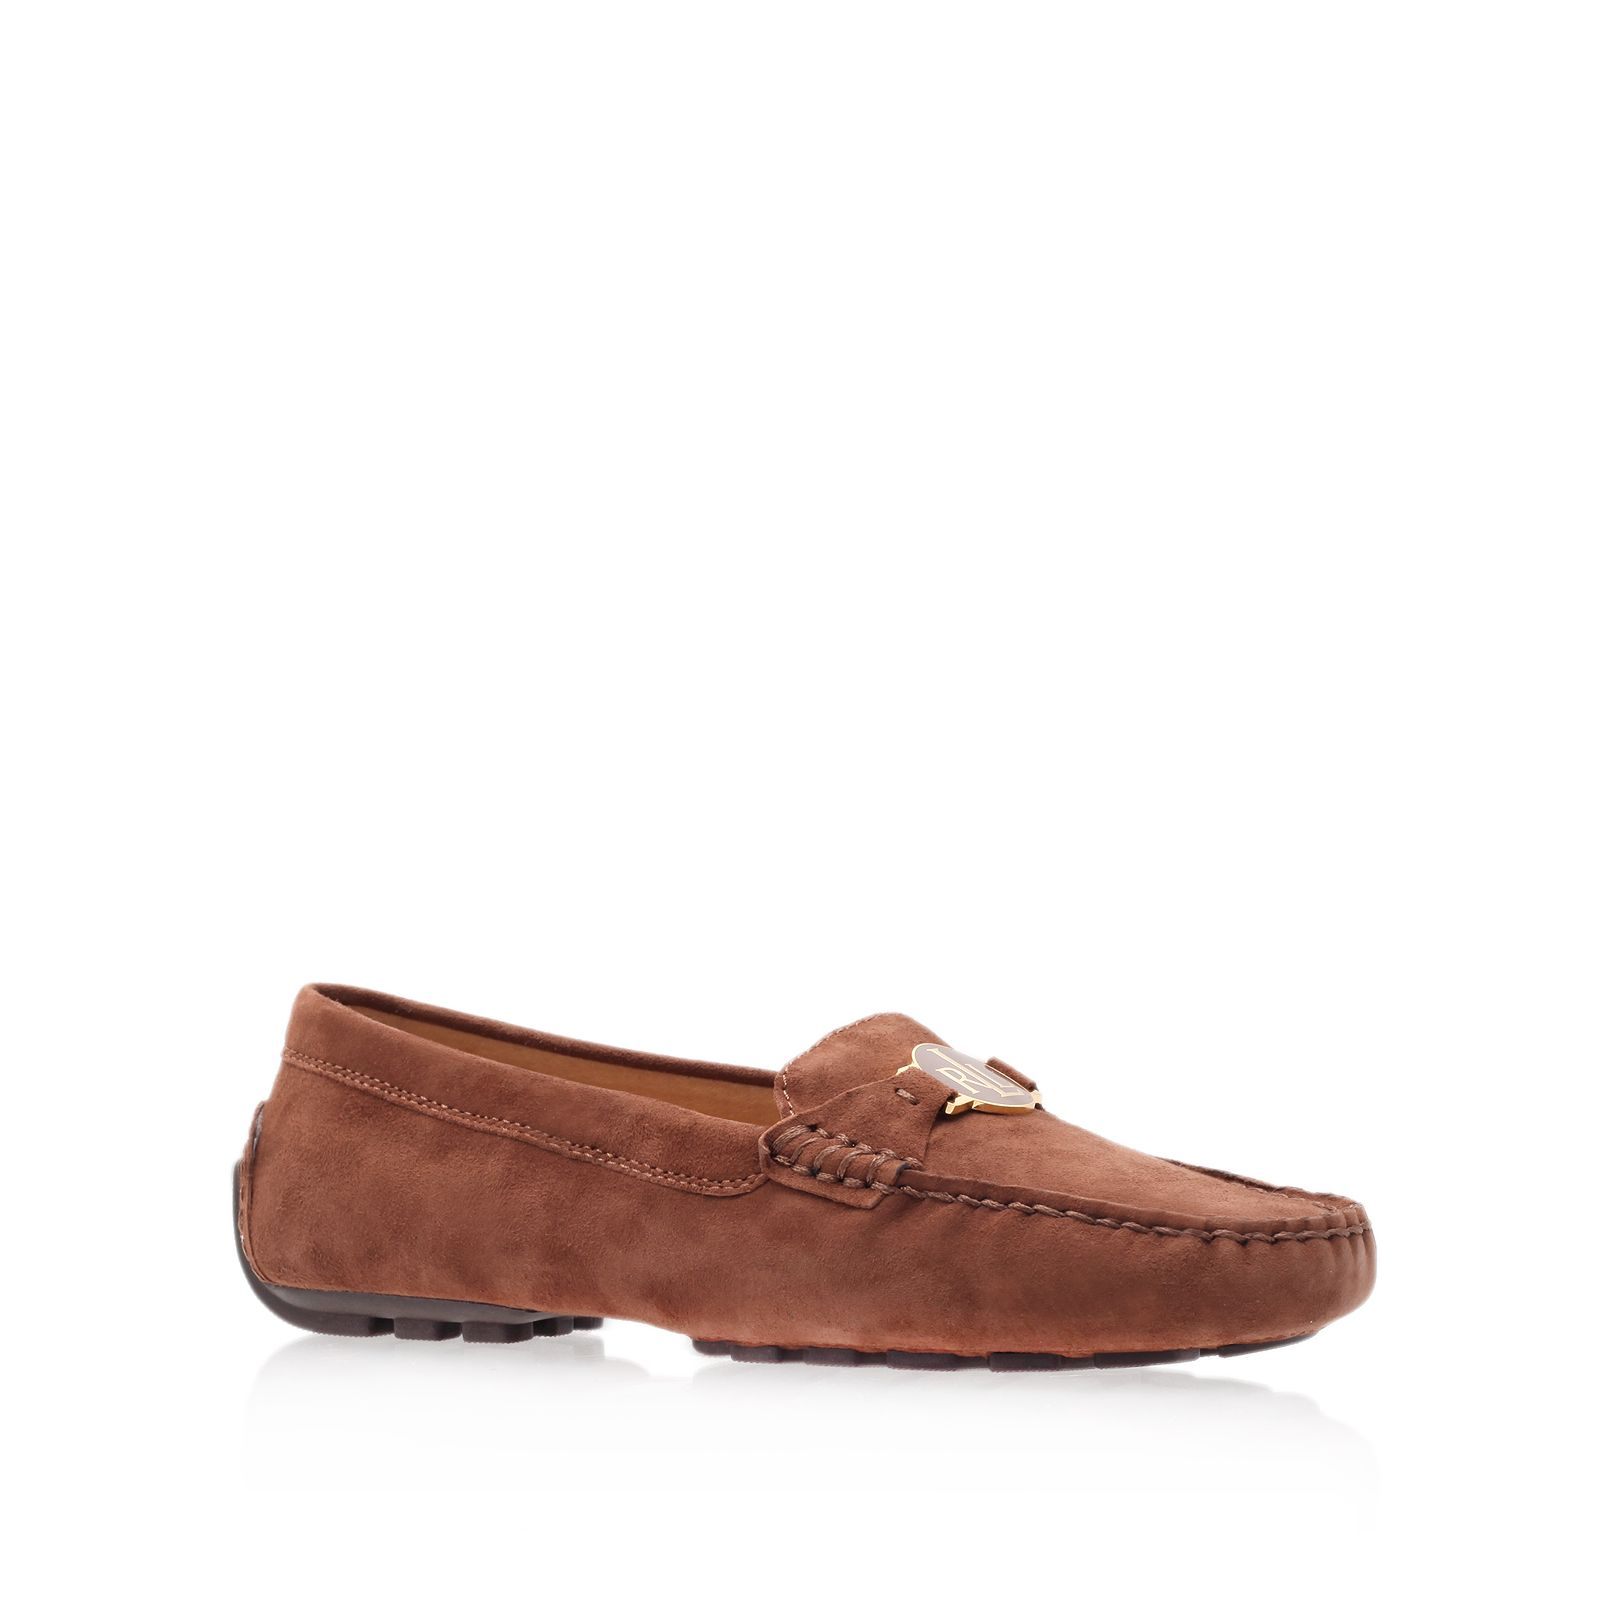 Carley loafer shoes